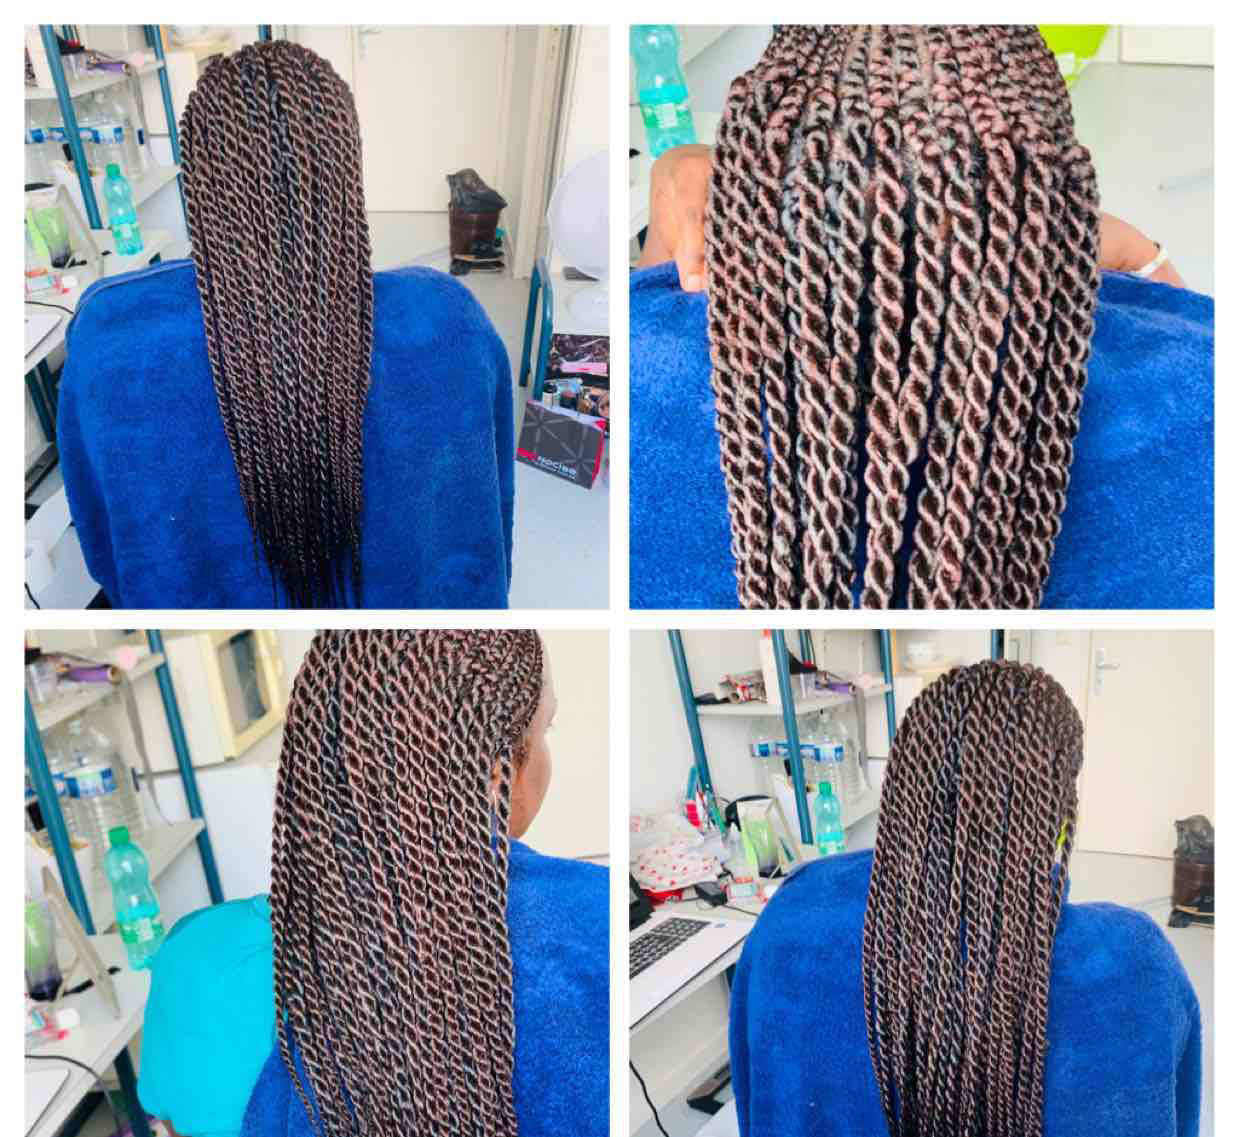 salon de coiffure afro tresse tresses box braids crochet braids vanilles tissages paris 75 77 78 91 92 93 94 95 WIJBLNZR